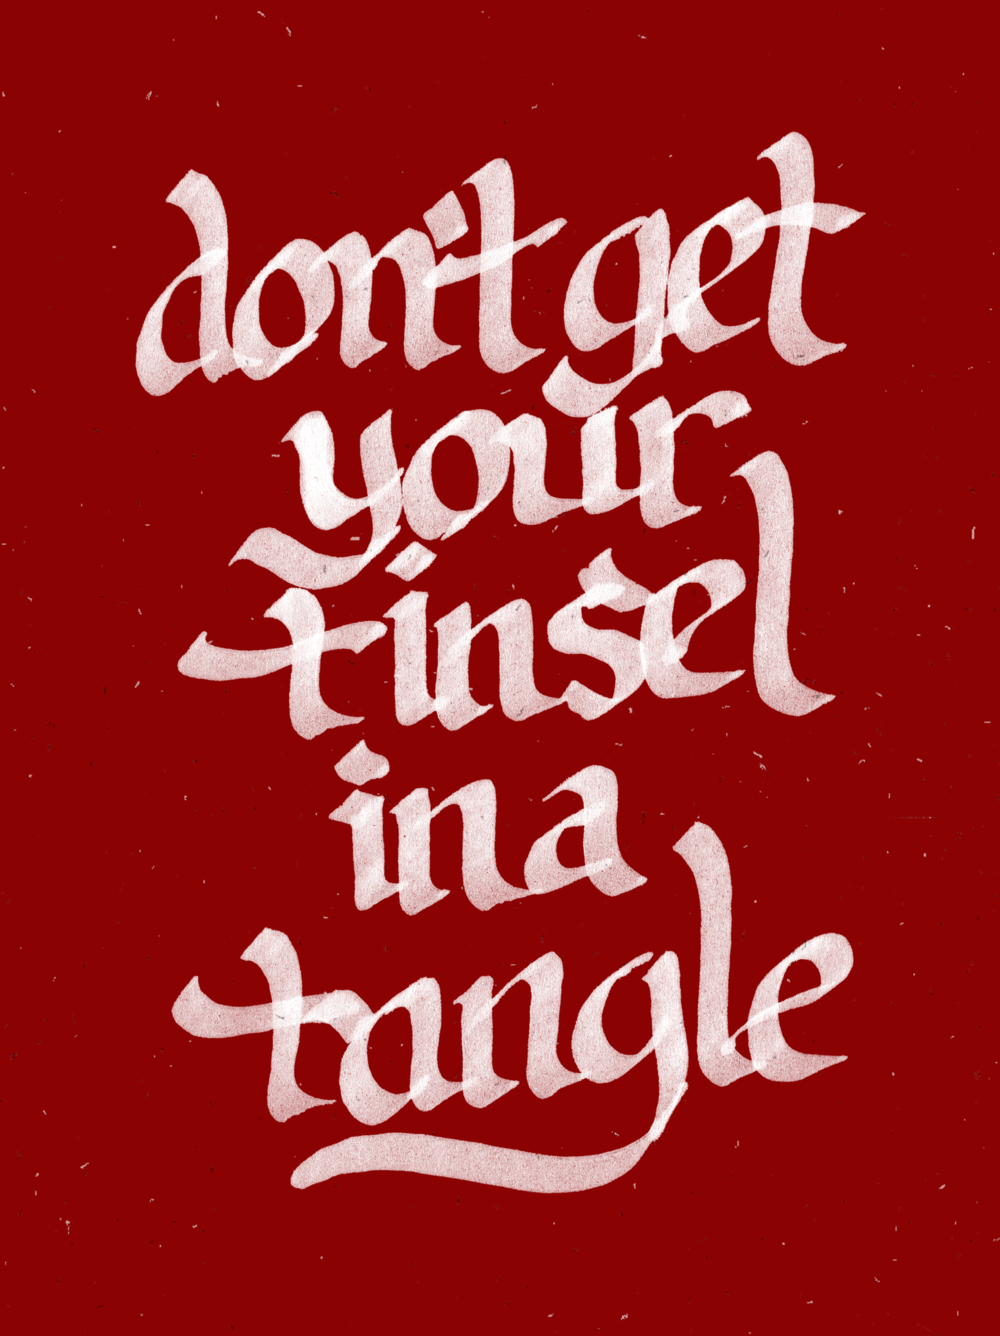 239-Dont-Get-Your-Tinsel-in-a-Tangle.png